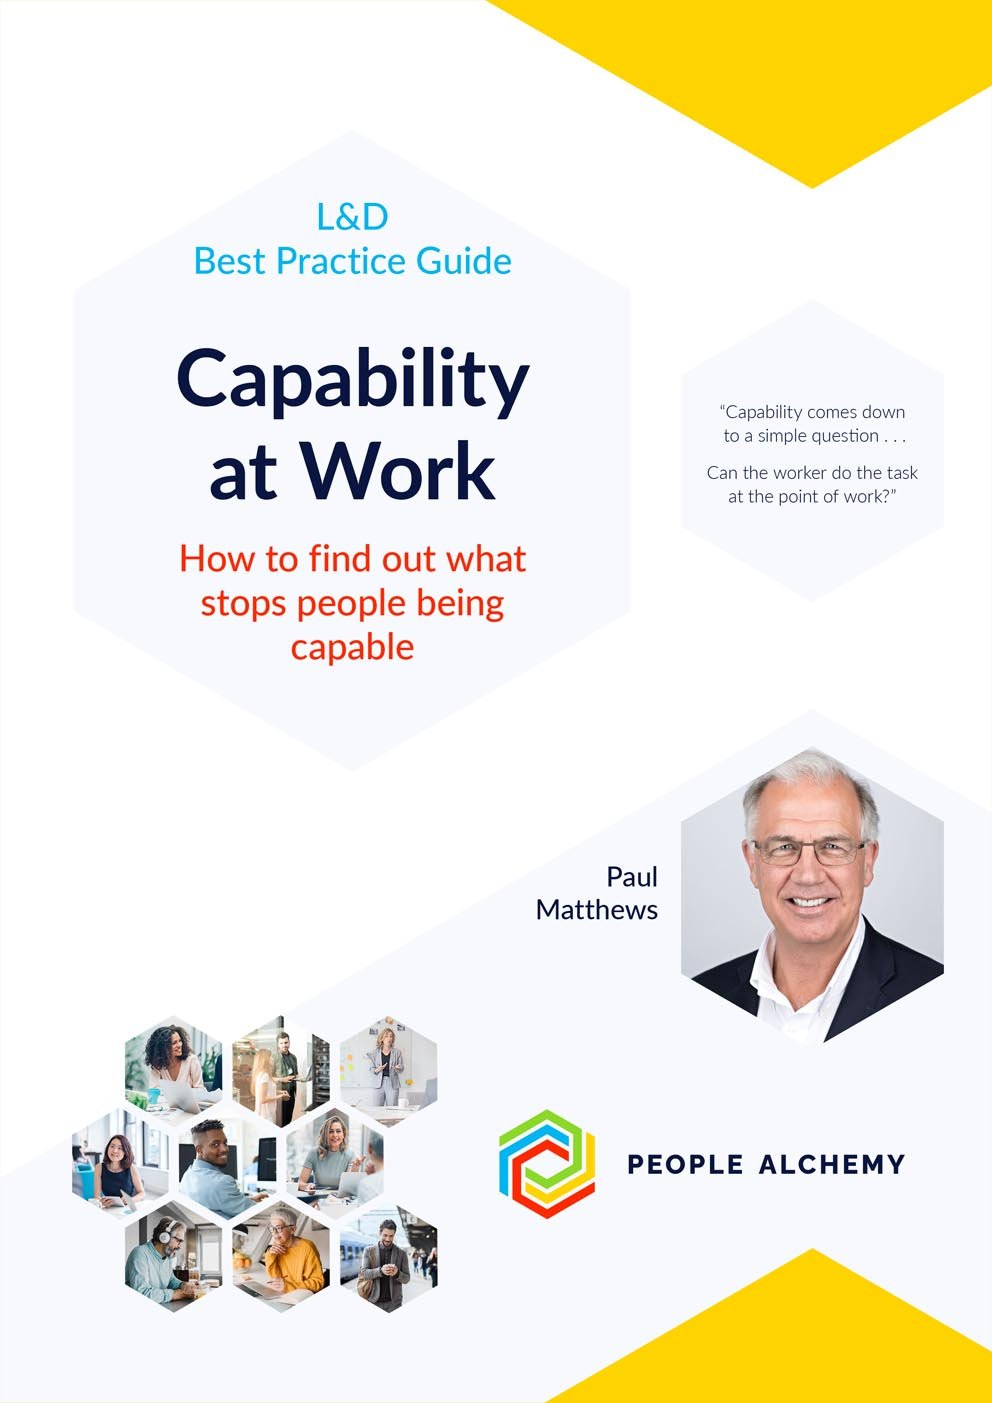 https://peoplealchemy.com/wp-content/uploads/2021/09/PA-Best-Practice-Guides-2021-covers-6.jpg